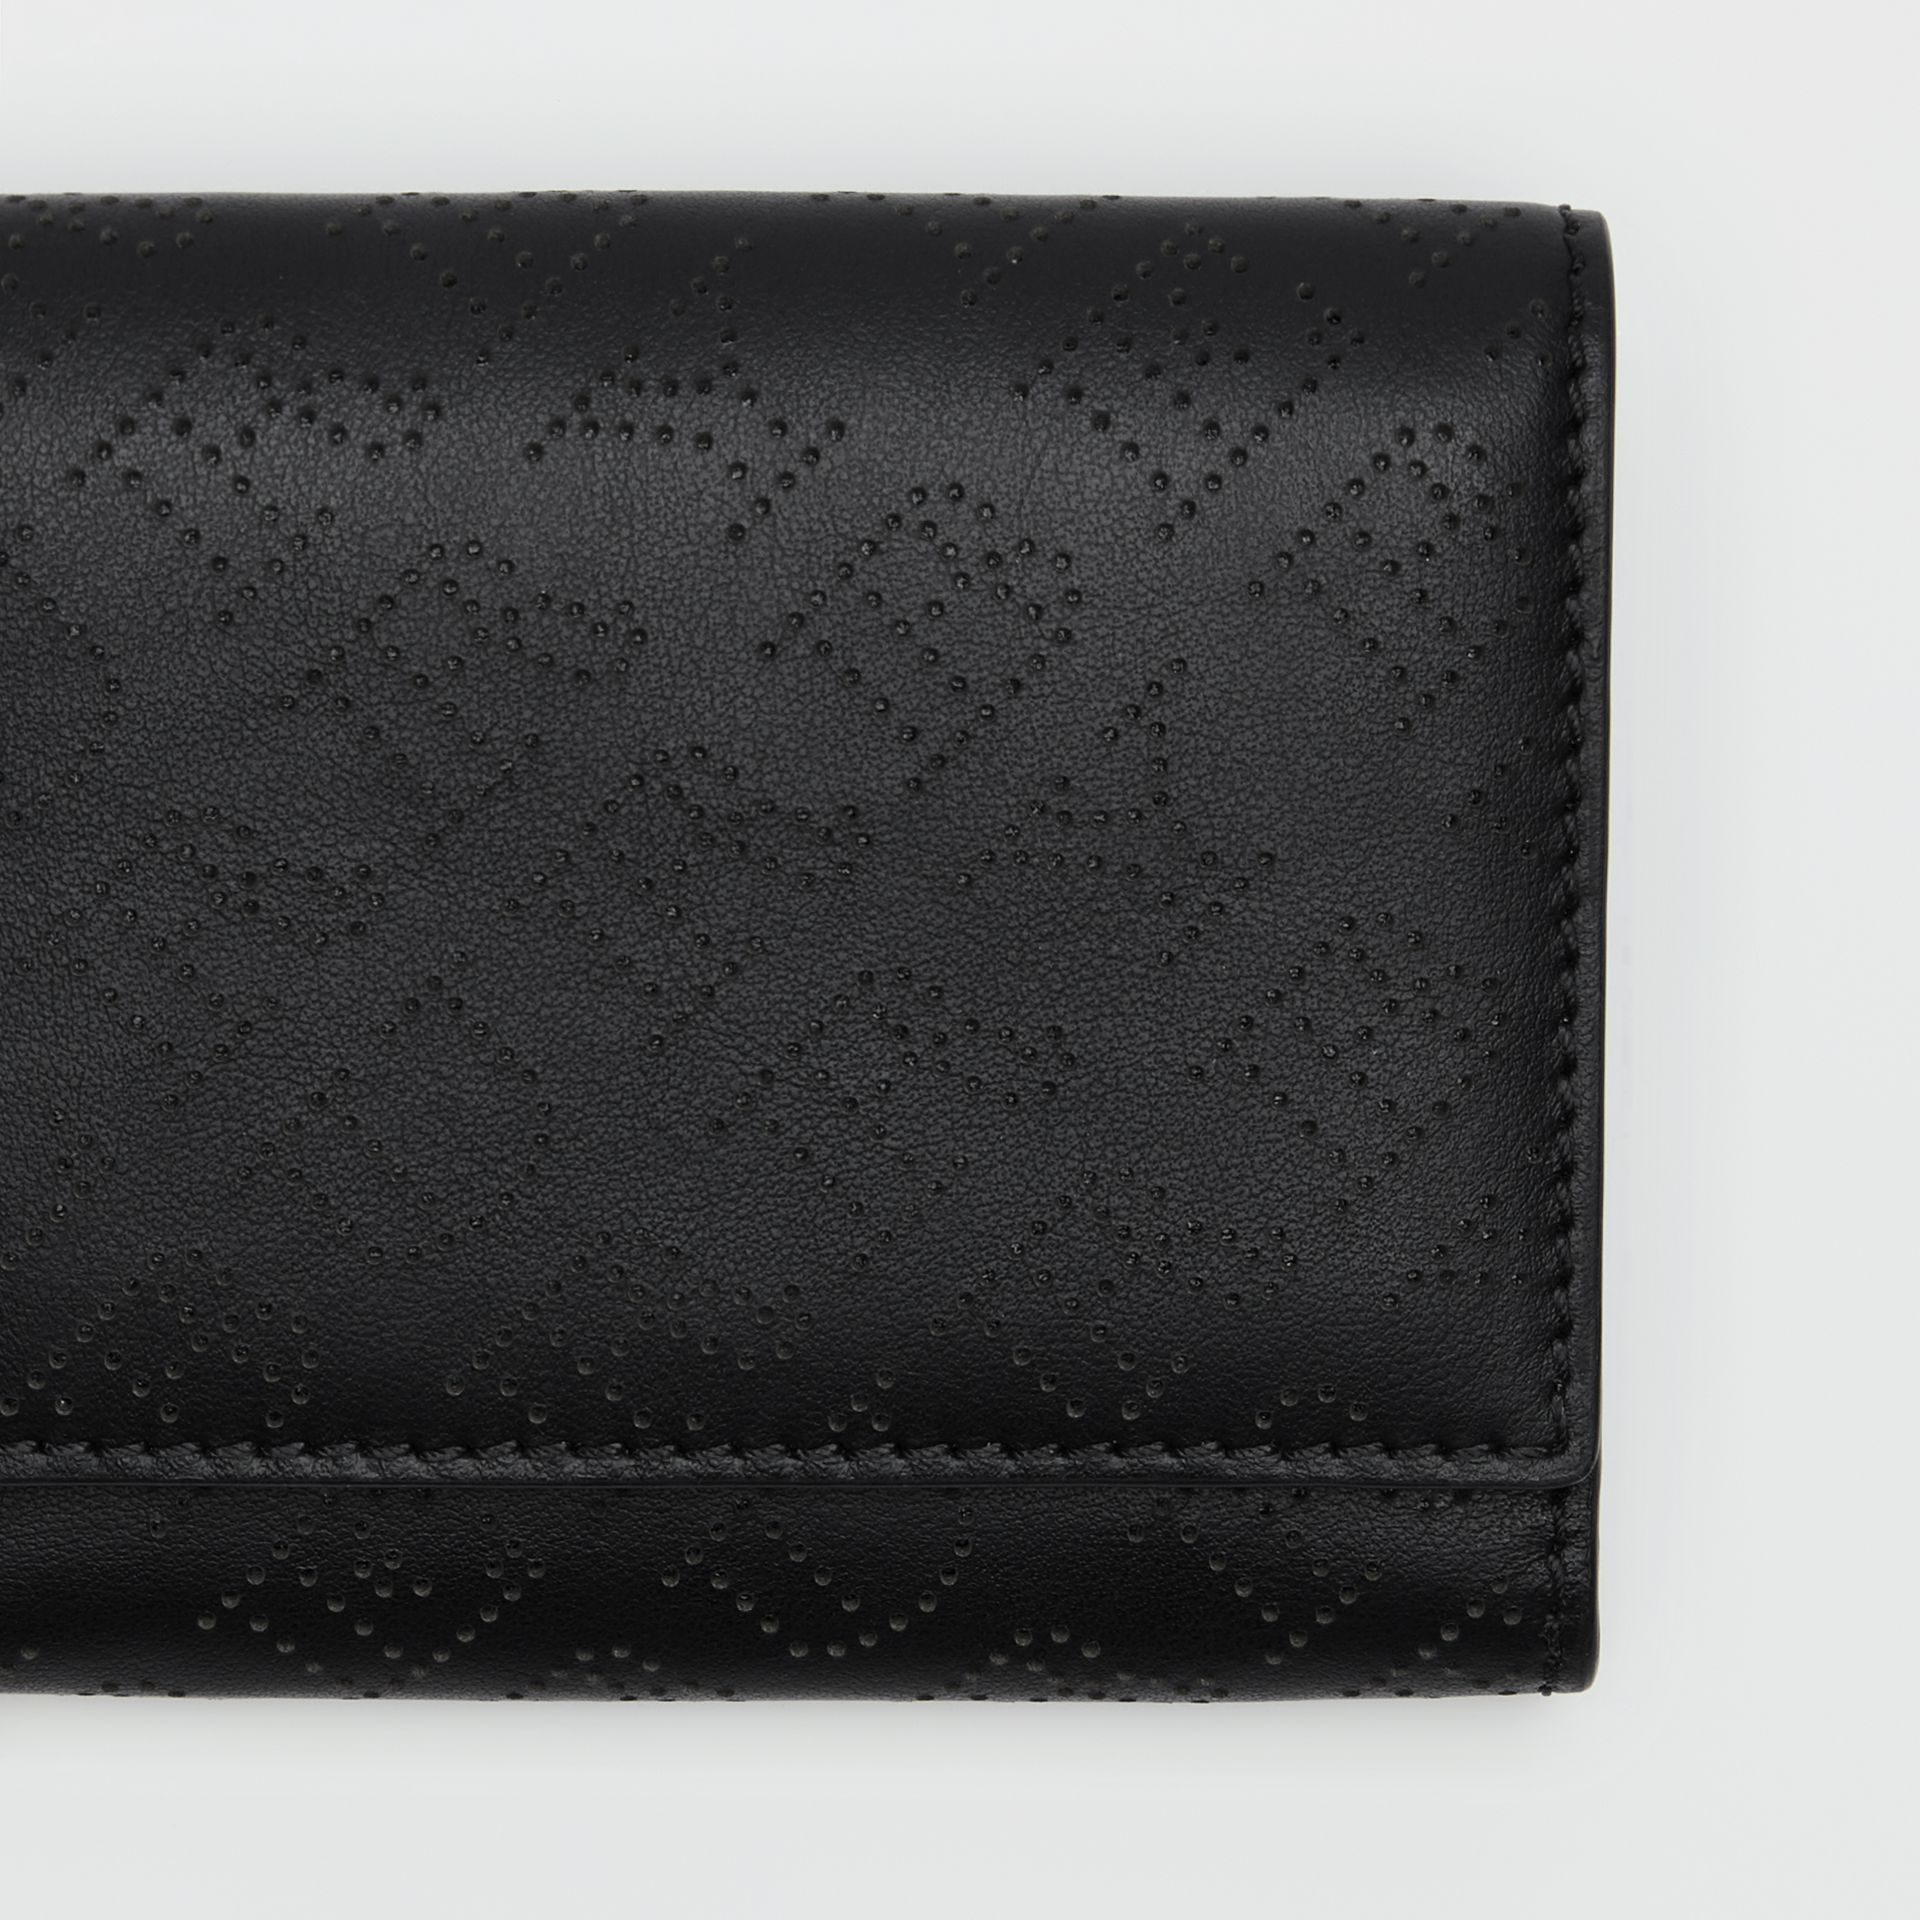 Small Perforated Logo Leather Wallet in Black - Women | Burberry Singapore - gallery image 1